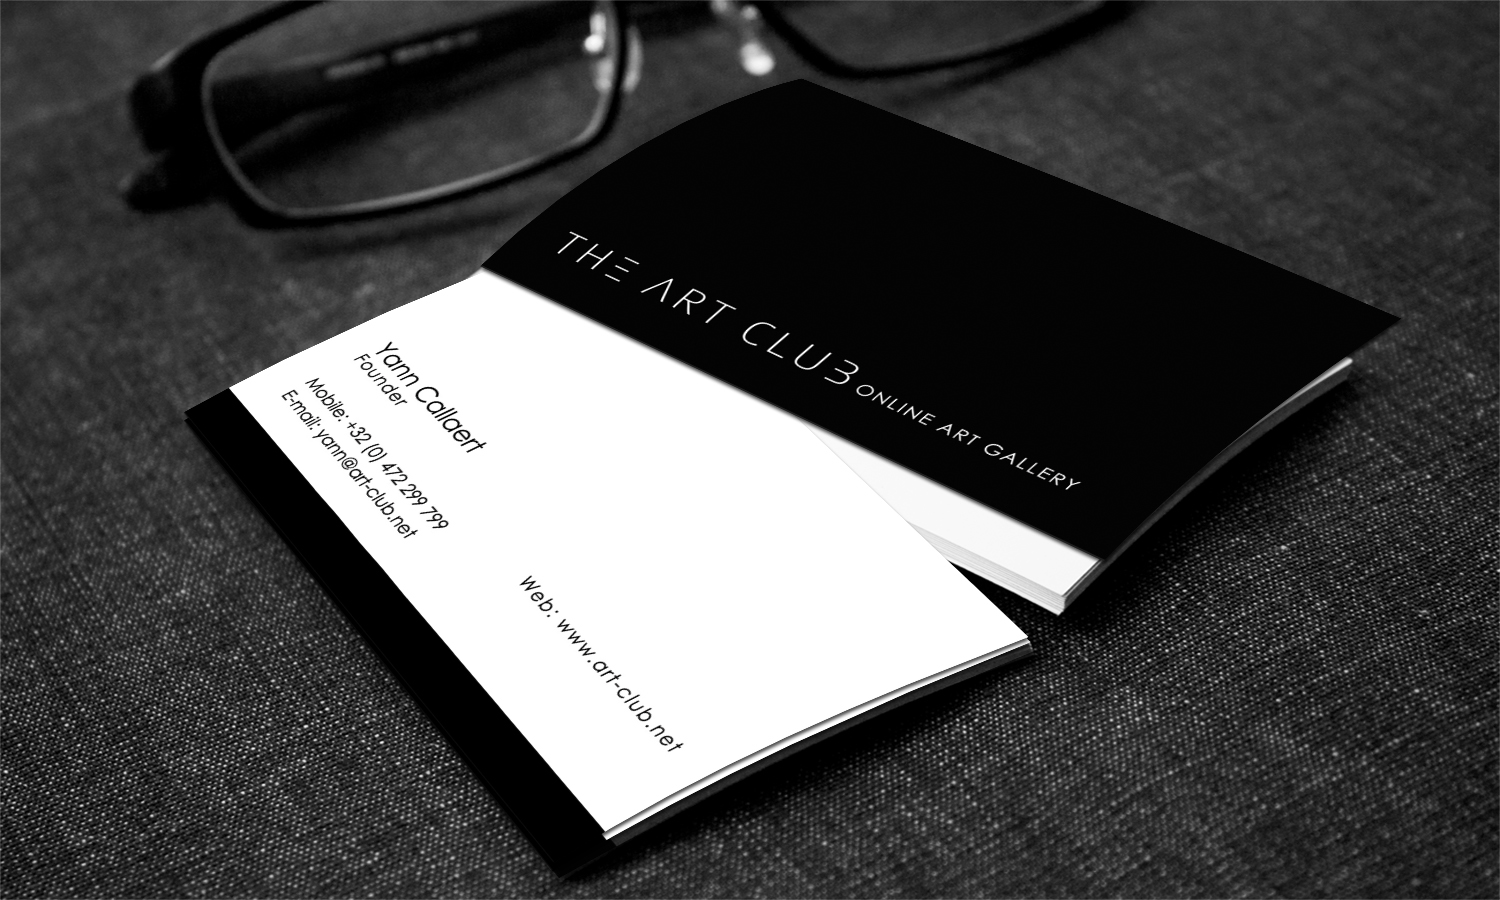 Upmarket serious business card design for caos vof by stylez business card design by stylez designz for online art gallery art management firm looking for reheart Image collections